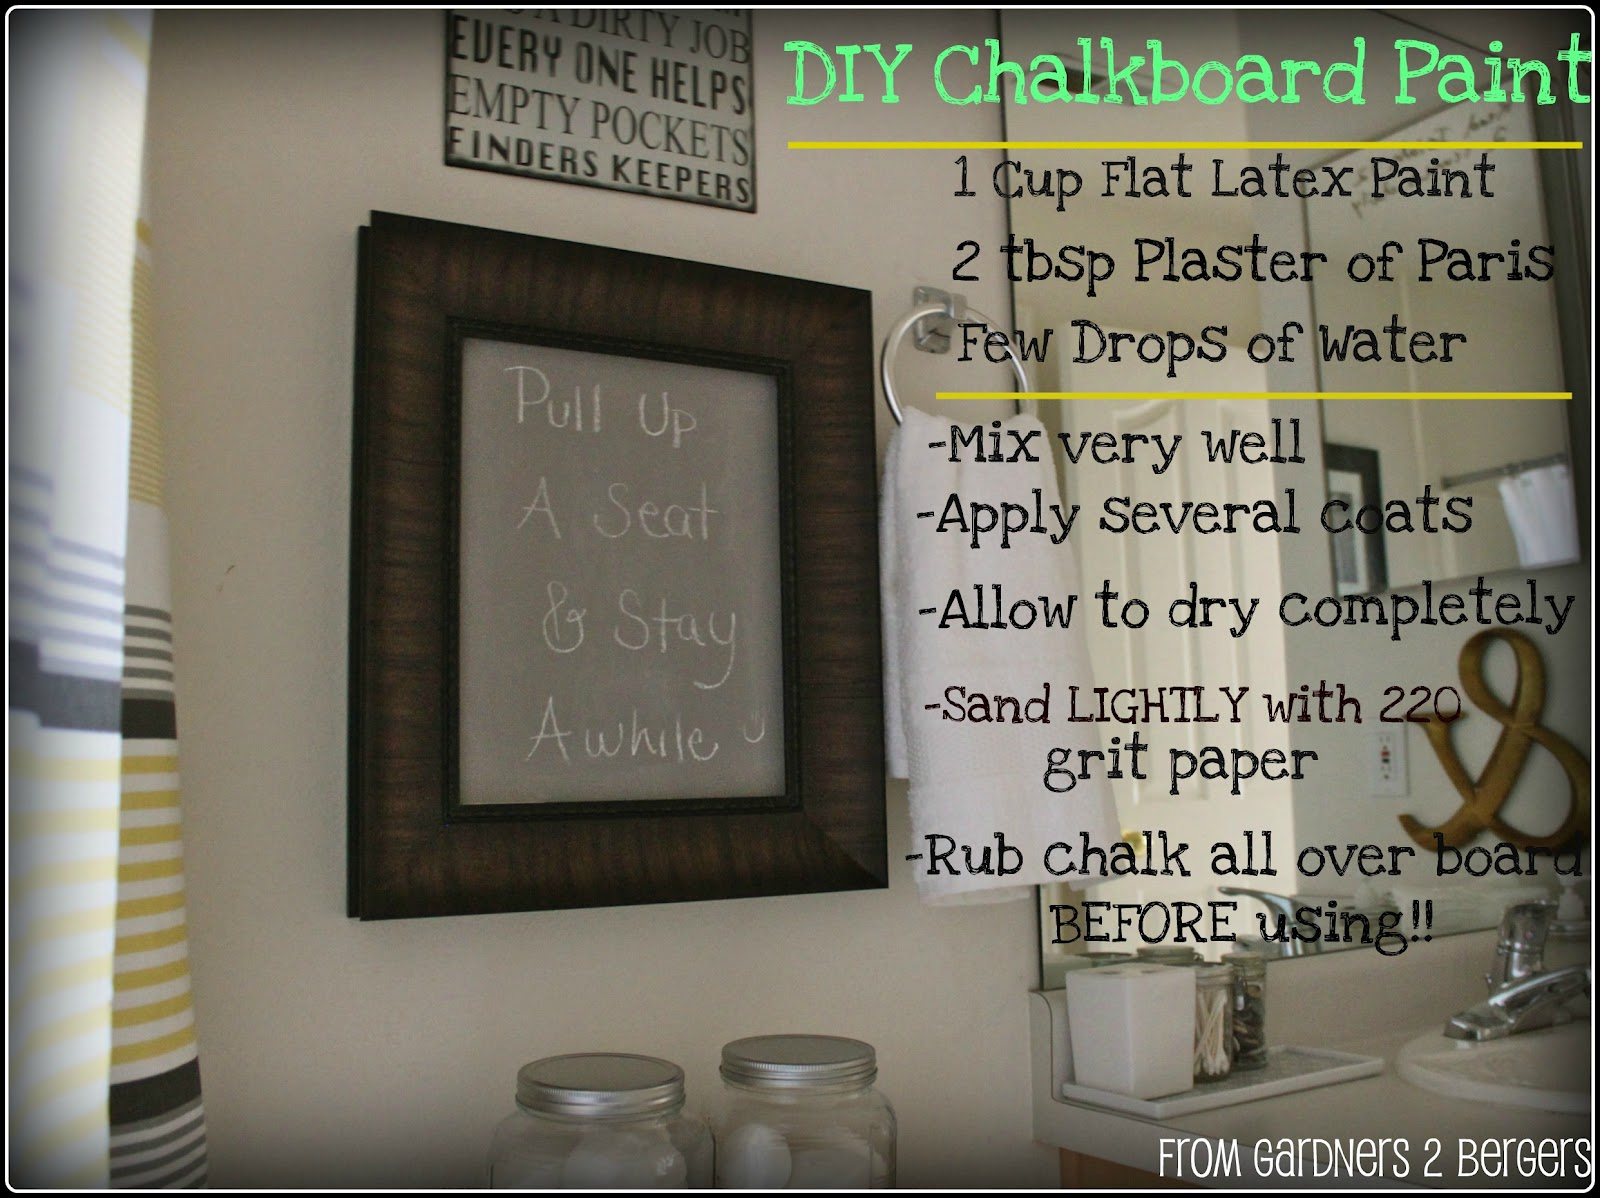 From gardners 2 bergers 3 chalkboard projects diy chalkboard from gardners 2 bergers 3 chalkboard projects diy chalkboard paint recipe too jeuxipadfo Image collections